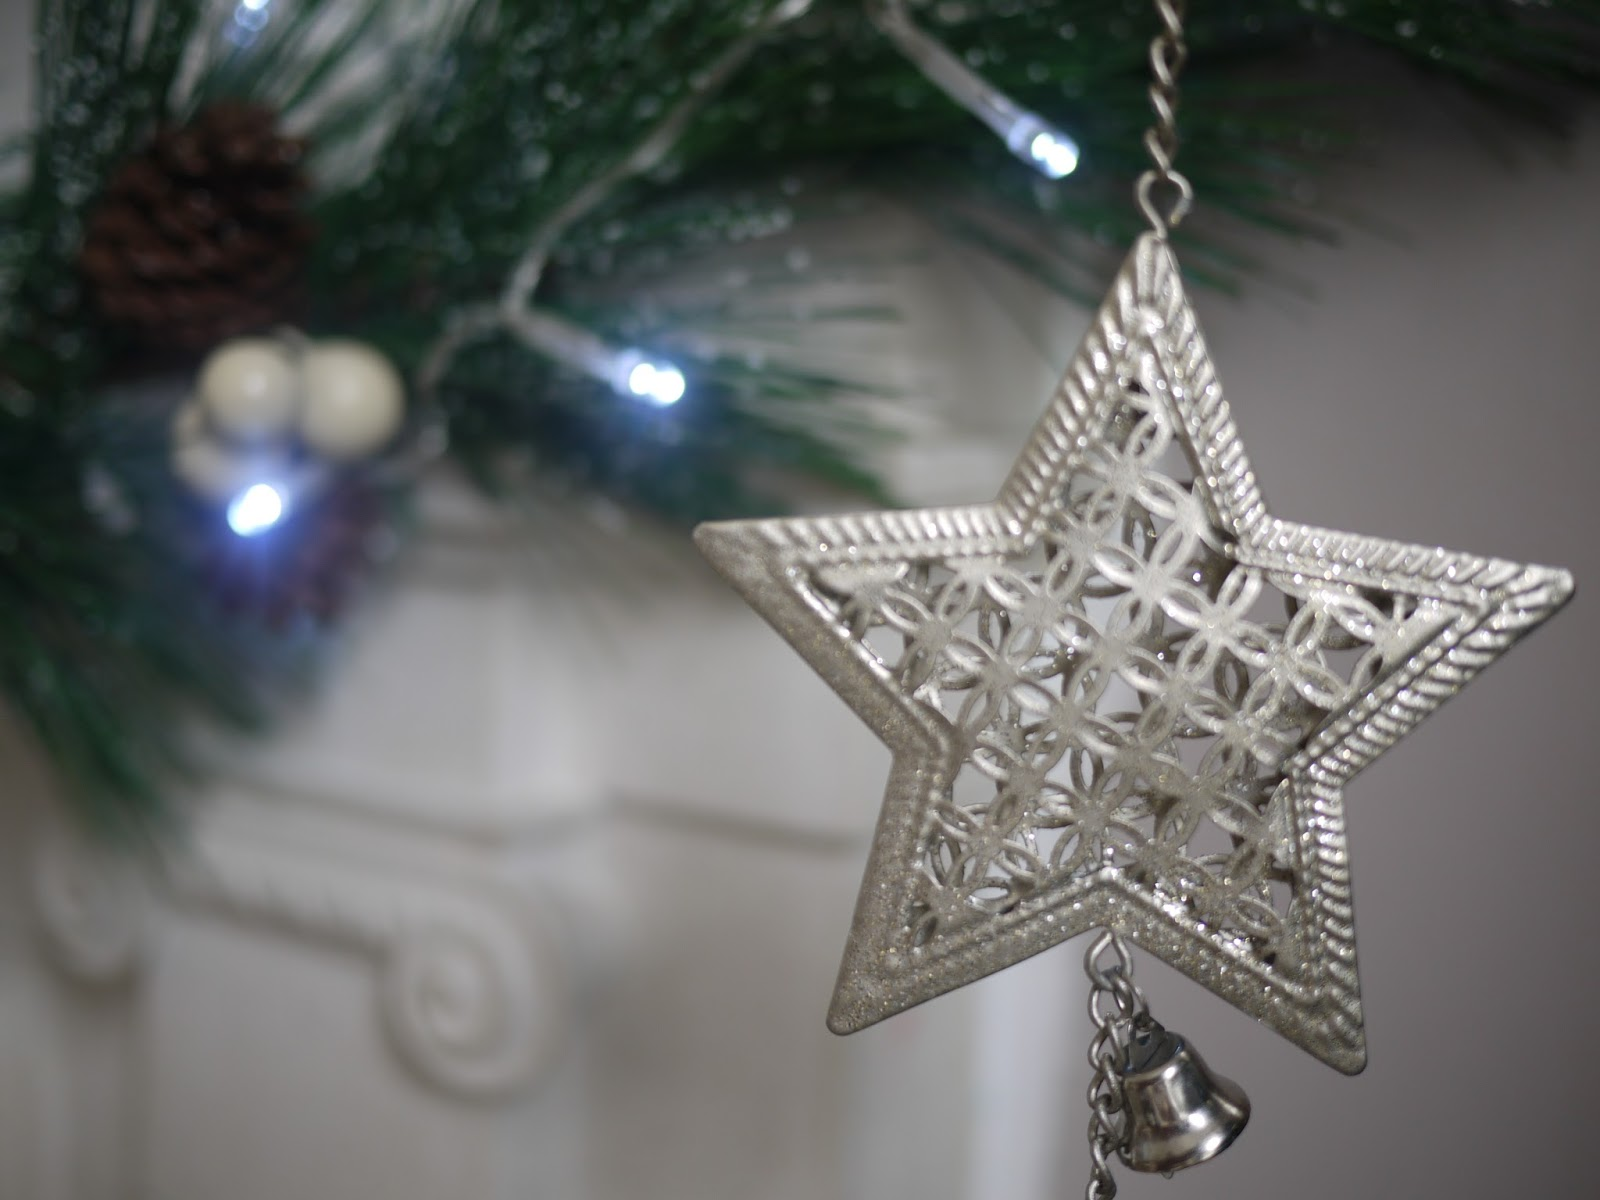 Christmas decorations from Dunelm Mill